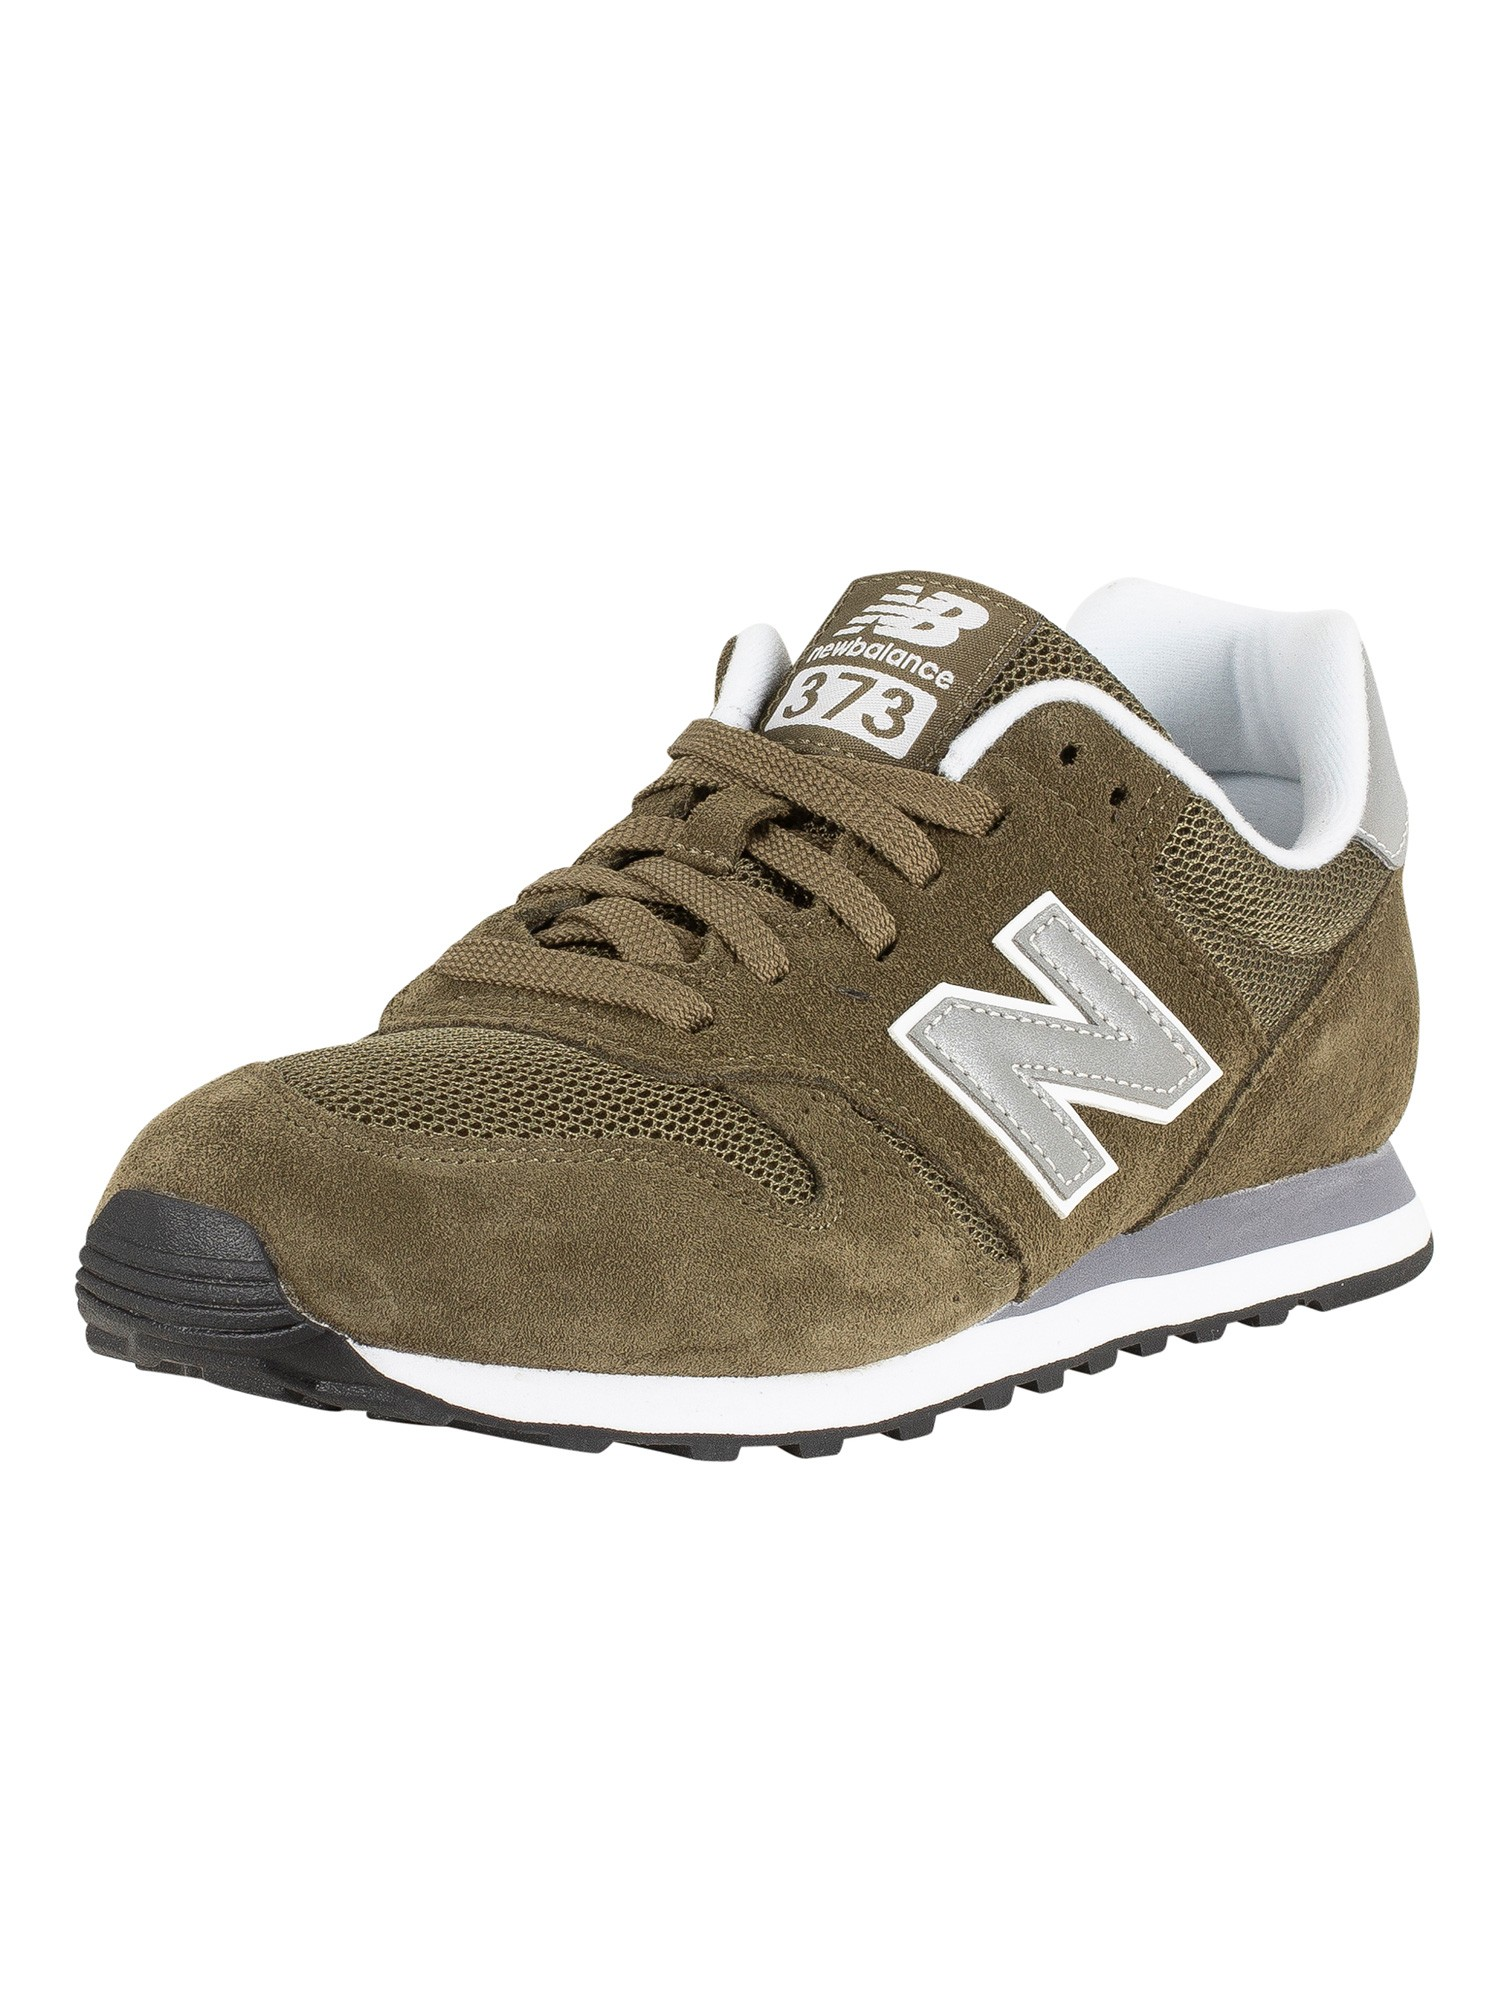 classic fit f76bb b10e6 New Balance 373 Trainers - Dark Green